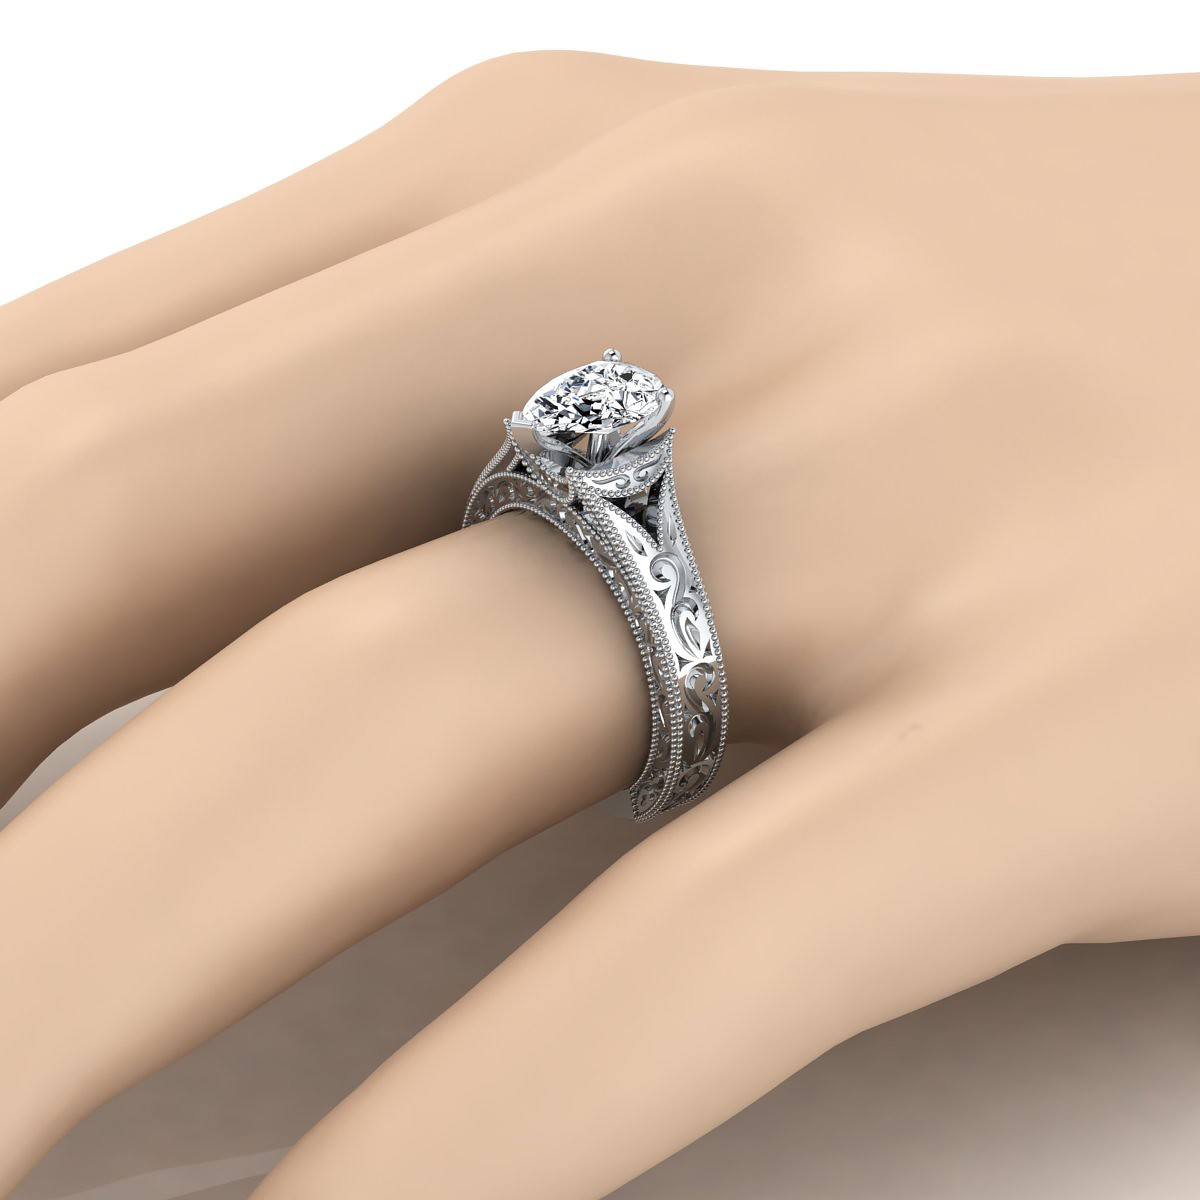 Pear Shape Antique Inspired Engraved Diamond Engagement Ring With Millgrain Finish In 14k White Gold